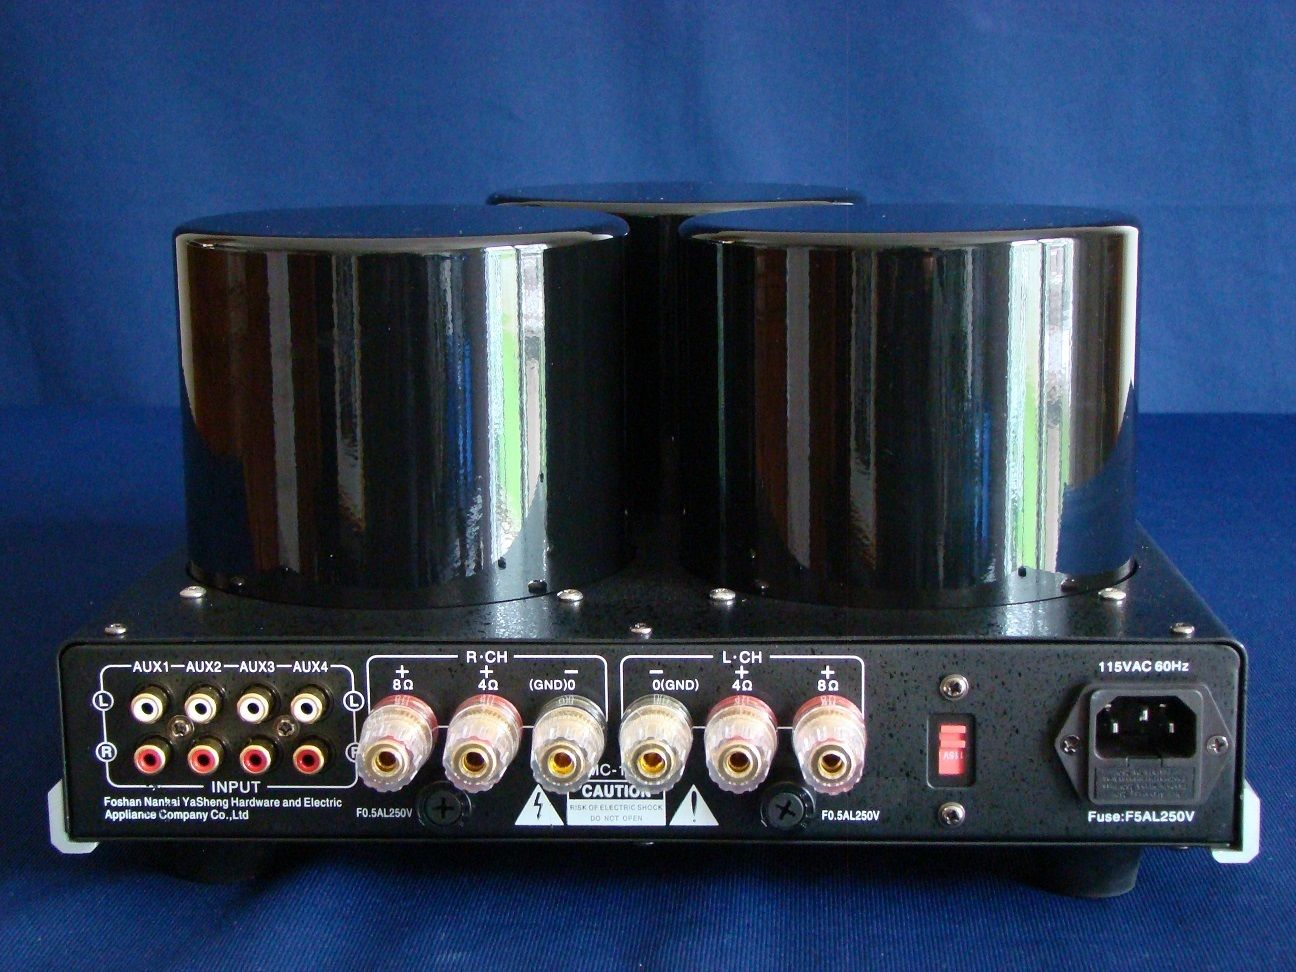 Review Yaqin Mc13s Stereo Integrated Amplifier Wall Of Sound The Fu29 Pushpull Circuit Amplifiercircuit Diagram Chassis Is Very Well Made You Can Choose To Love It Or Hate On Your Own Not Steam Punk Enough For Me Four Line Inputs